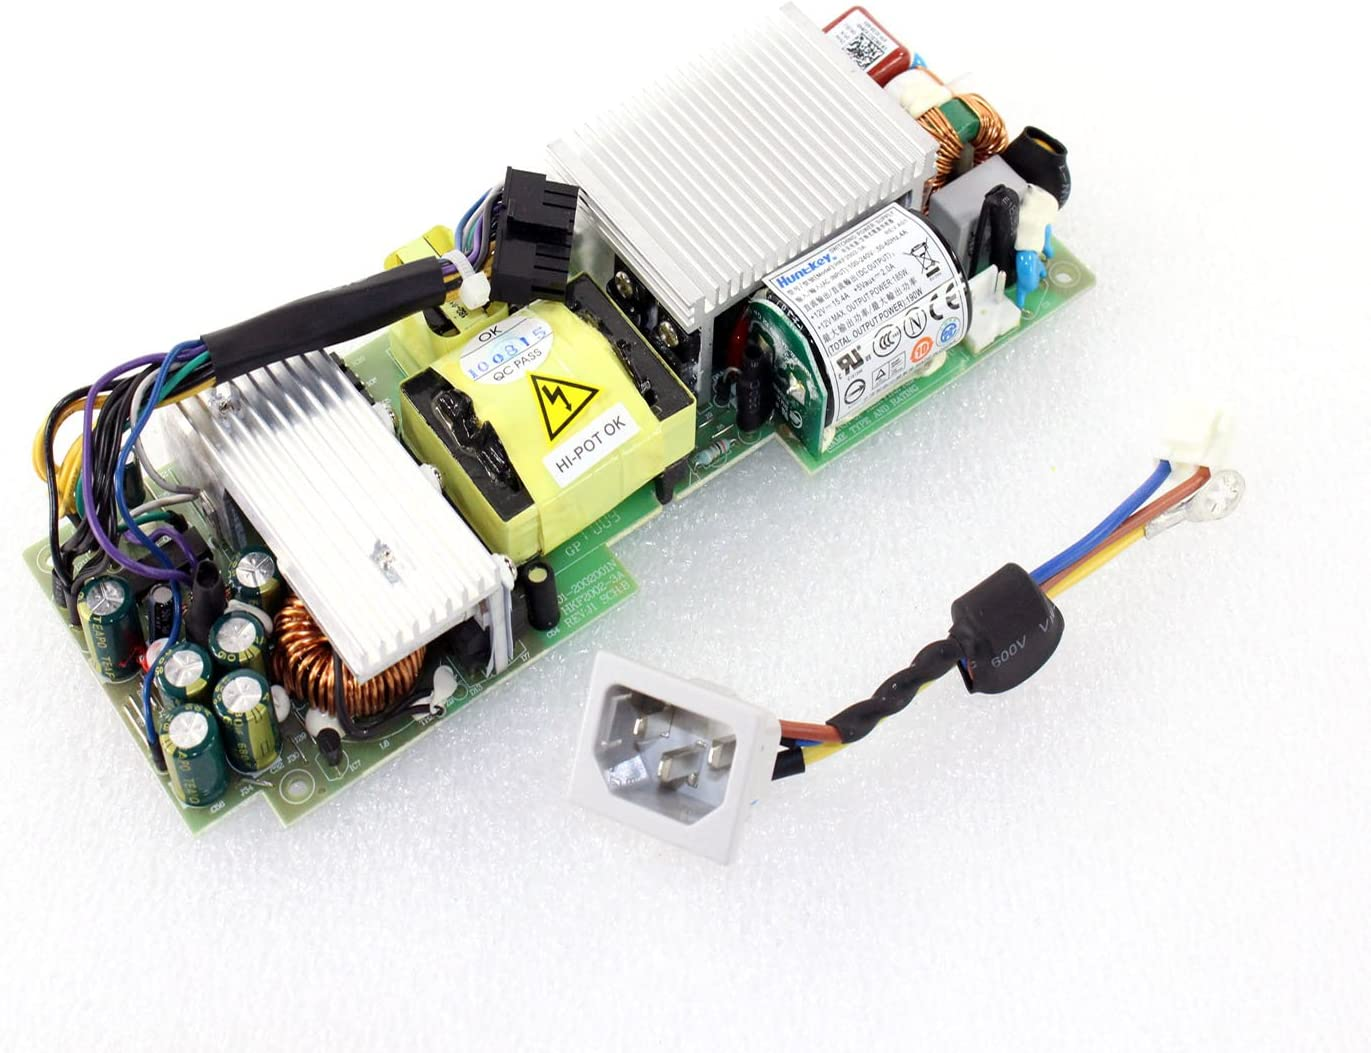 Dell N131J 190W Power Supply Unit PSU for Dell Desktop Studio One 1909 16-Pin Dell Part Numbers : N131J Dell Model Number: HKF2002-3A